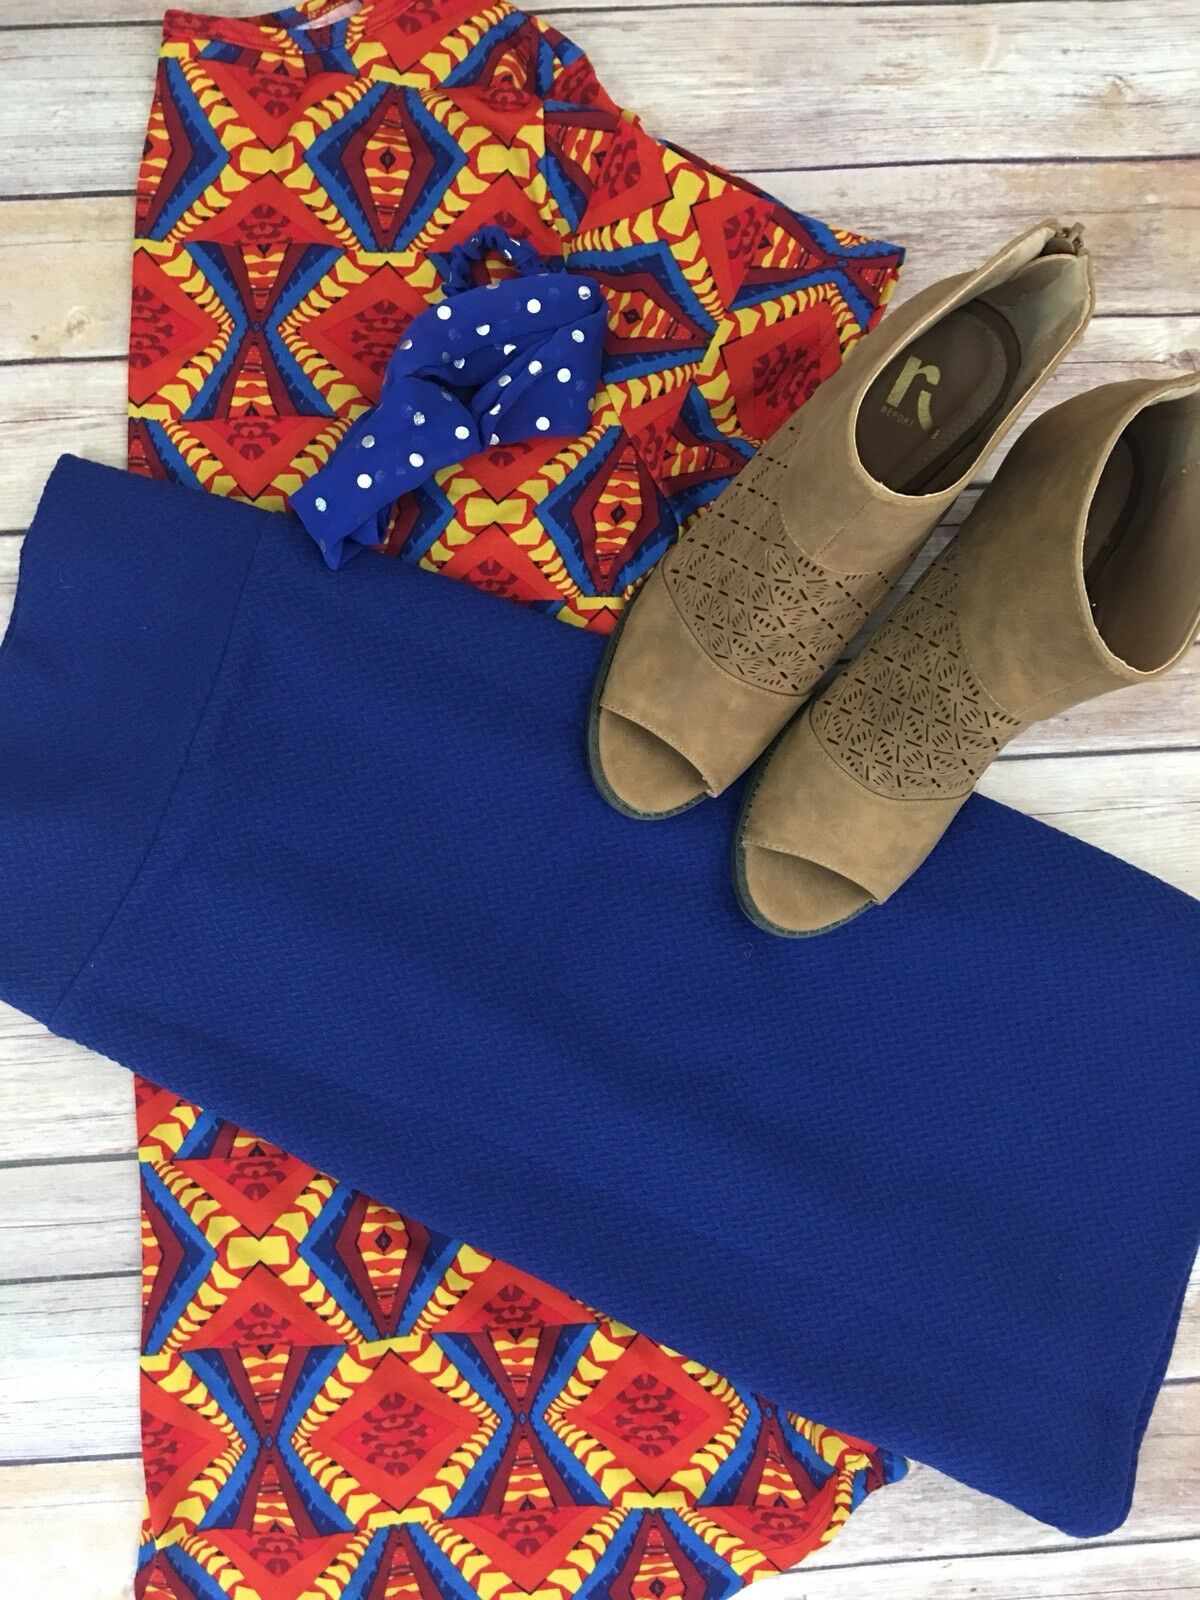 Ladies LuLaRoe, NWT, outfit - L Classic Tee and M Cassie Skirt